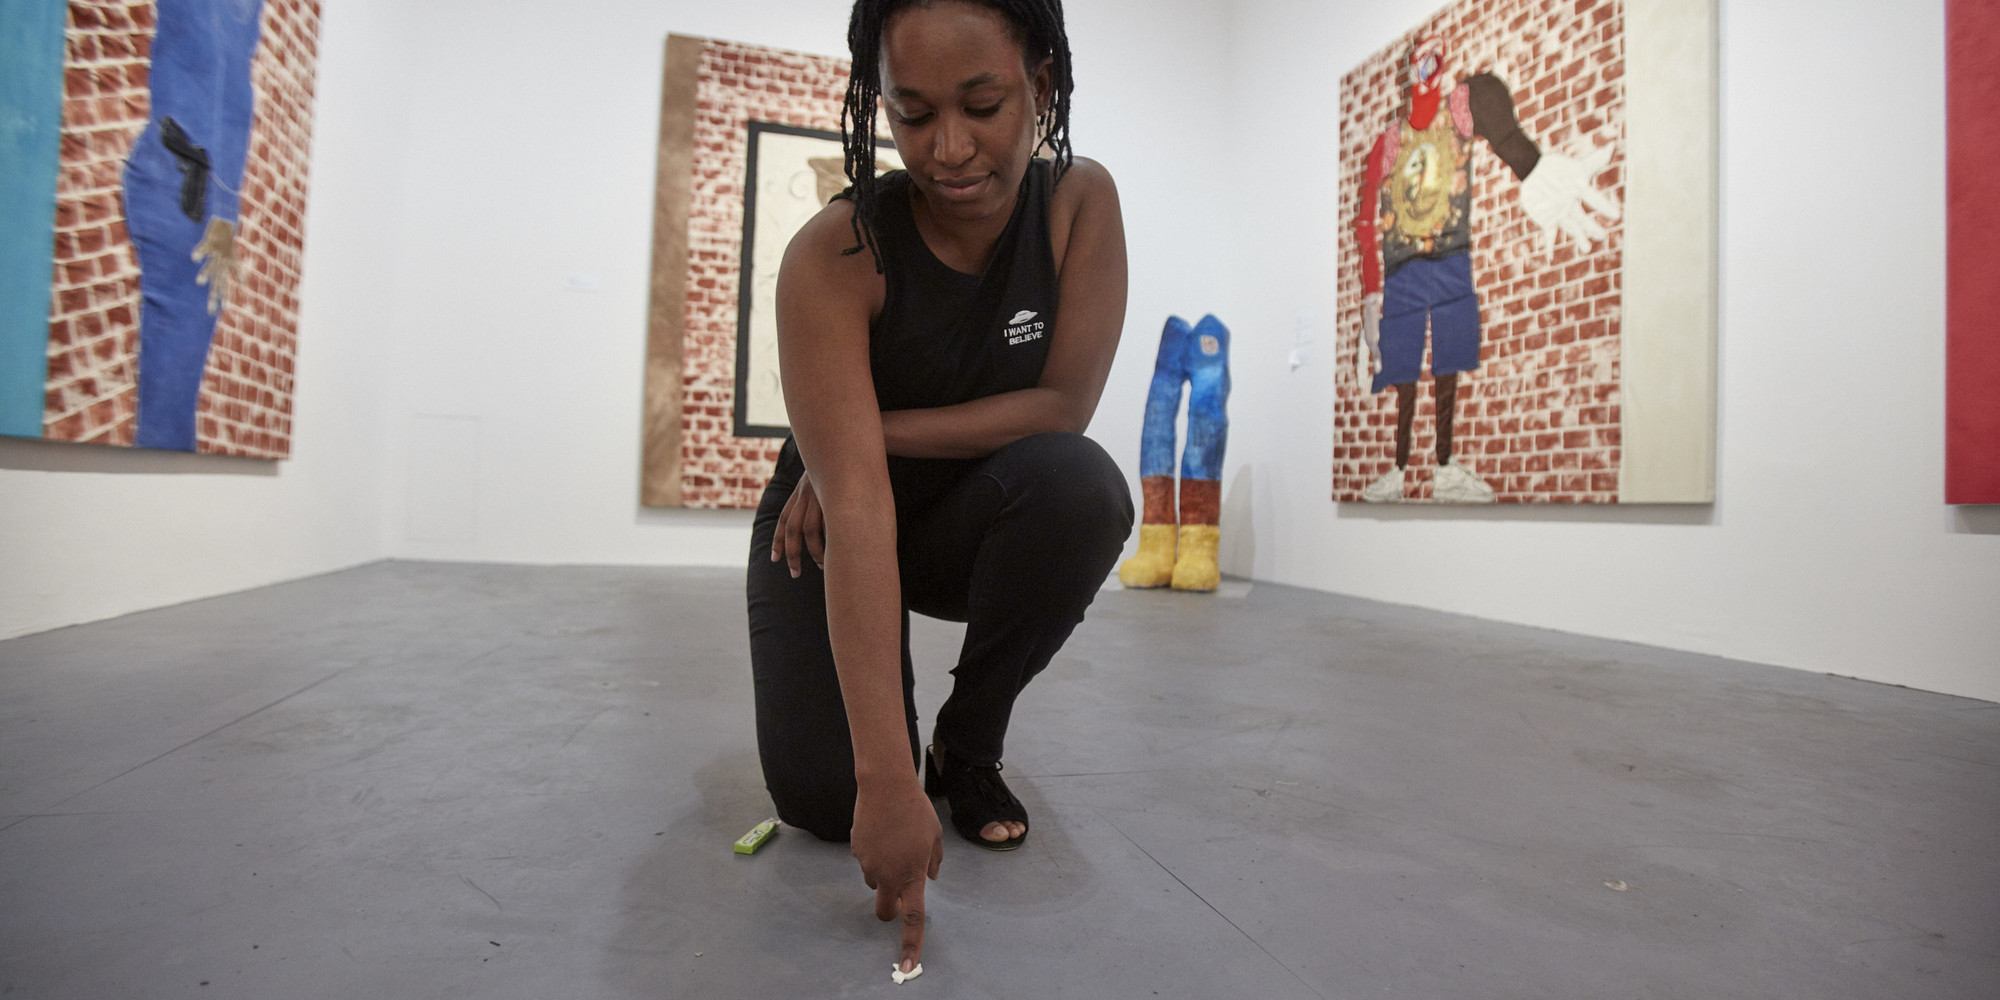 Tschabalala Self in the MOOD: Studio Museum Artists in Residence 2018–19 galleries at MoMA PS1. Photo: Matthew Septimus